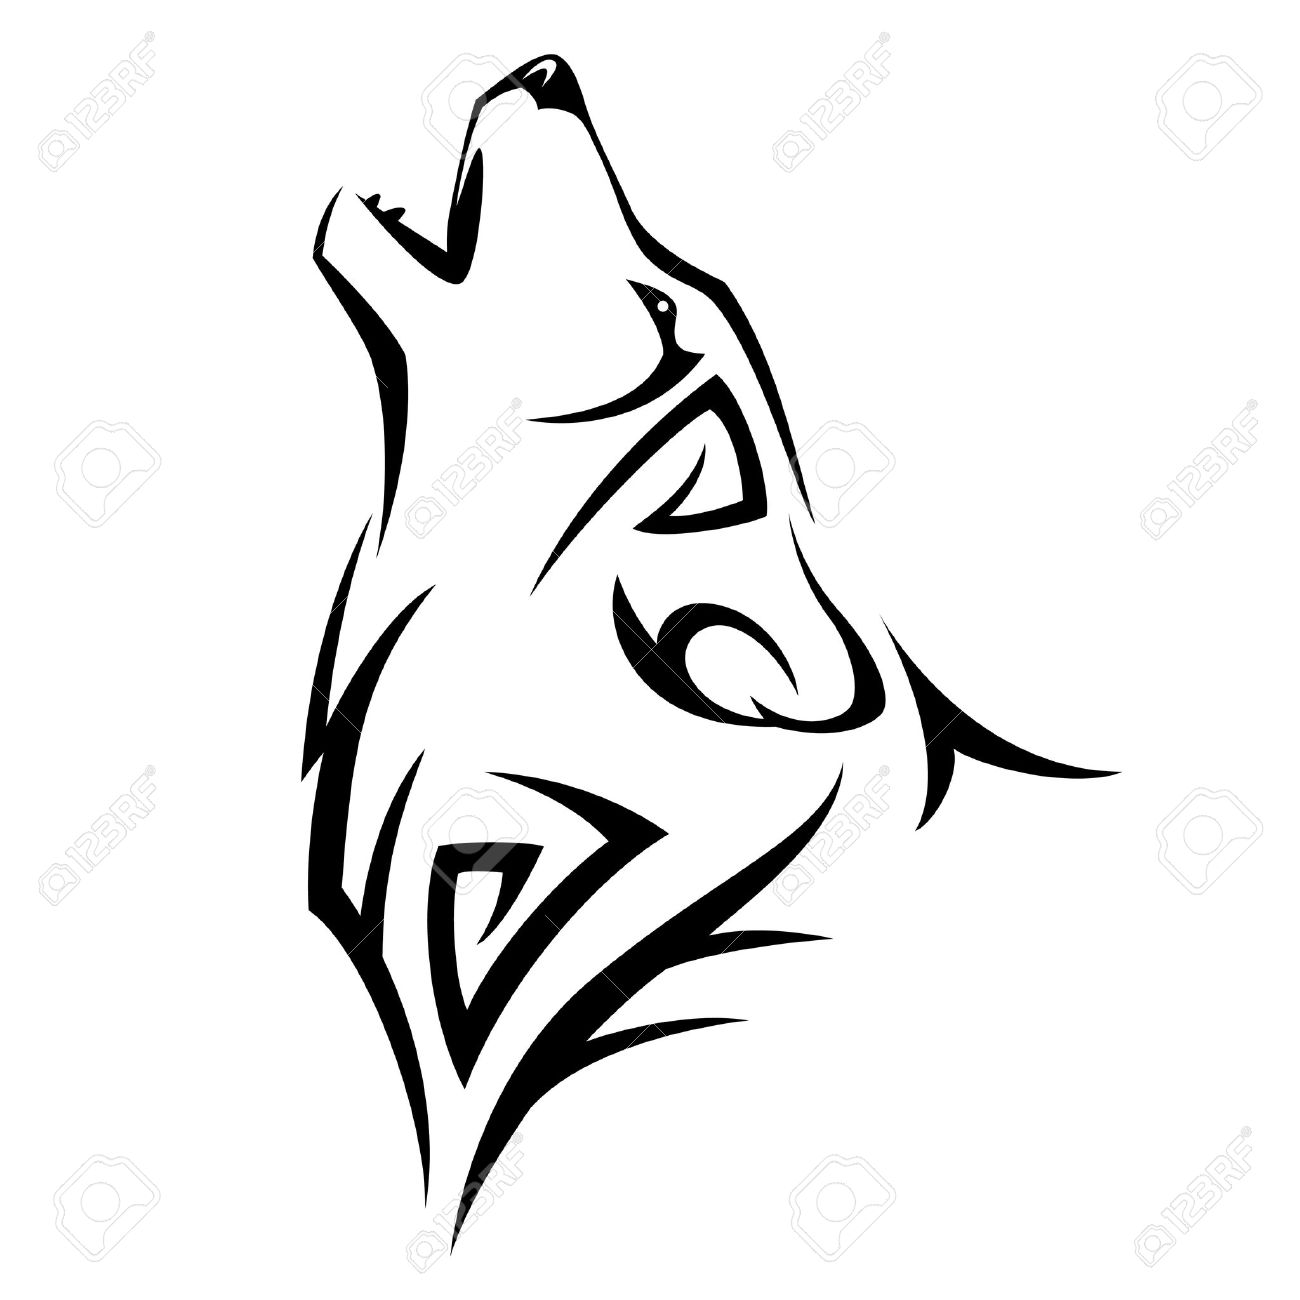 Howl Wolf Tattoo Tribal Design Illustration Royalty Free Cliparts